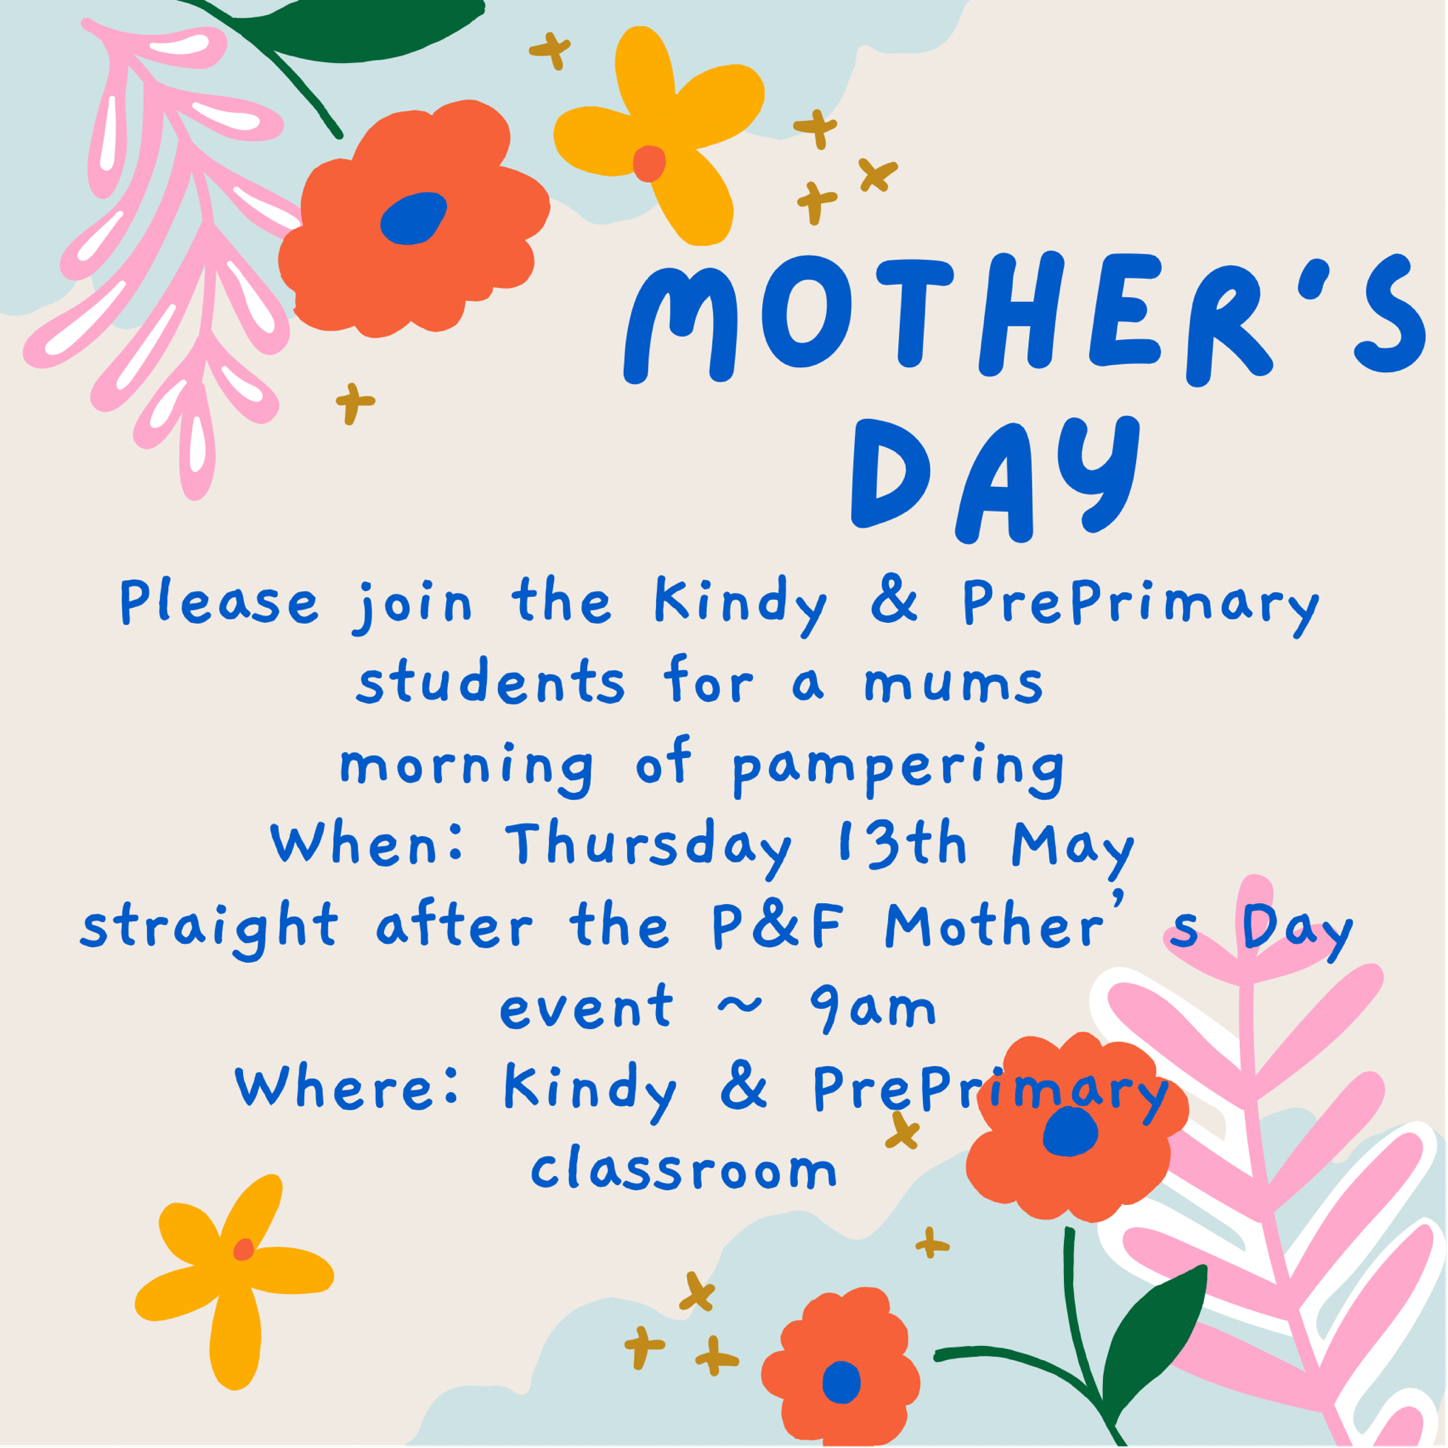 RESCHEDULED - Kindy and Pre Primary Mother's Day Pampering Morning